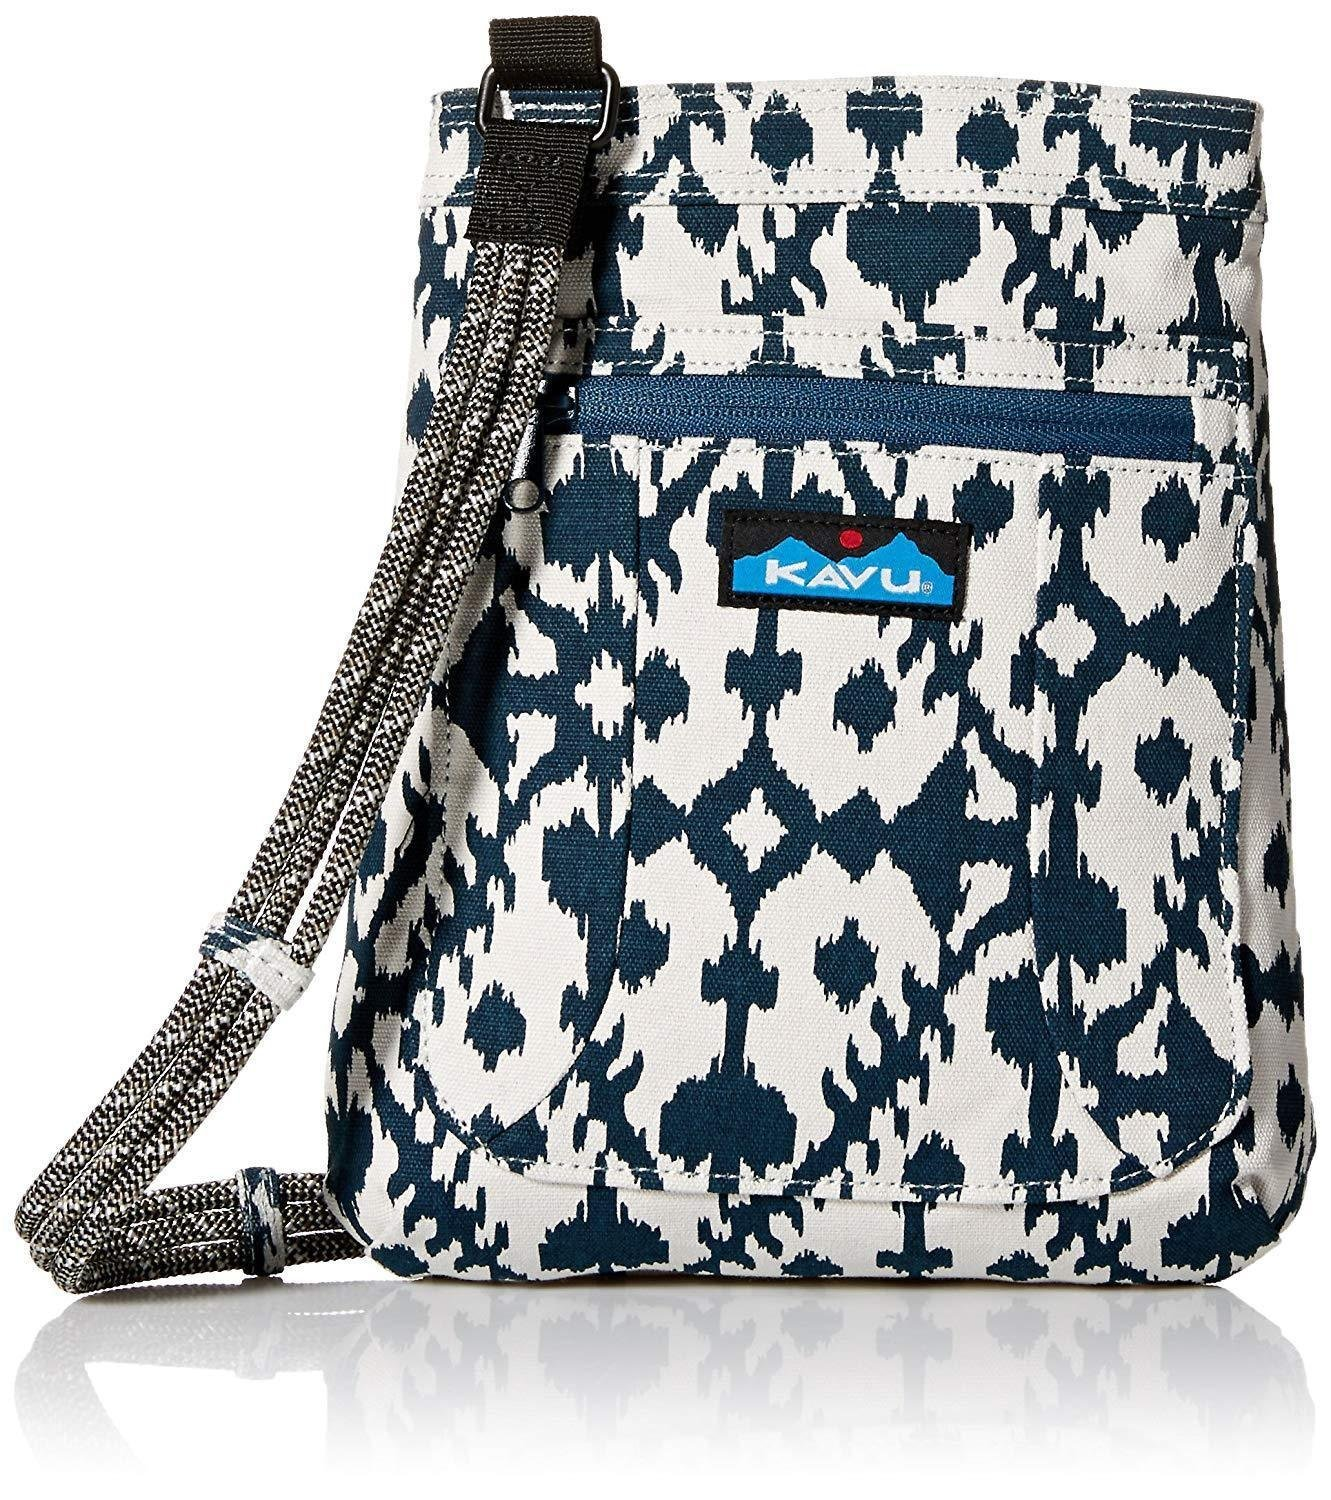 Kavu Keepalong Bag Womens Semi Padded Sling Canvas